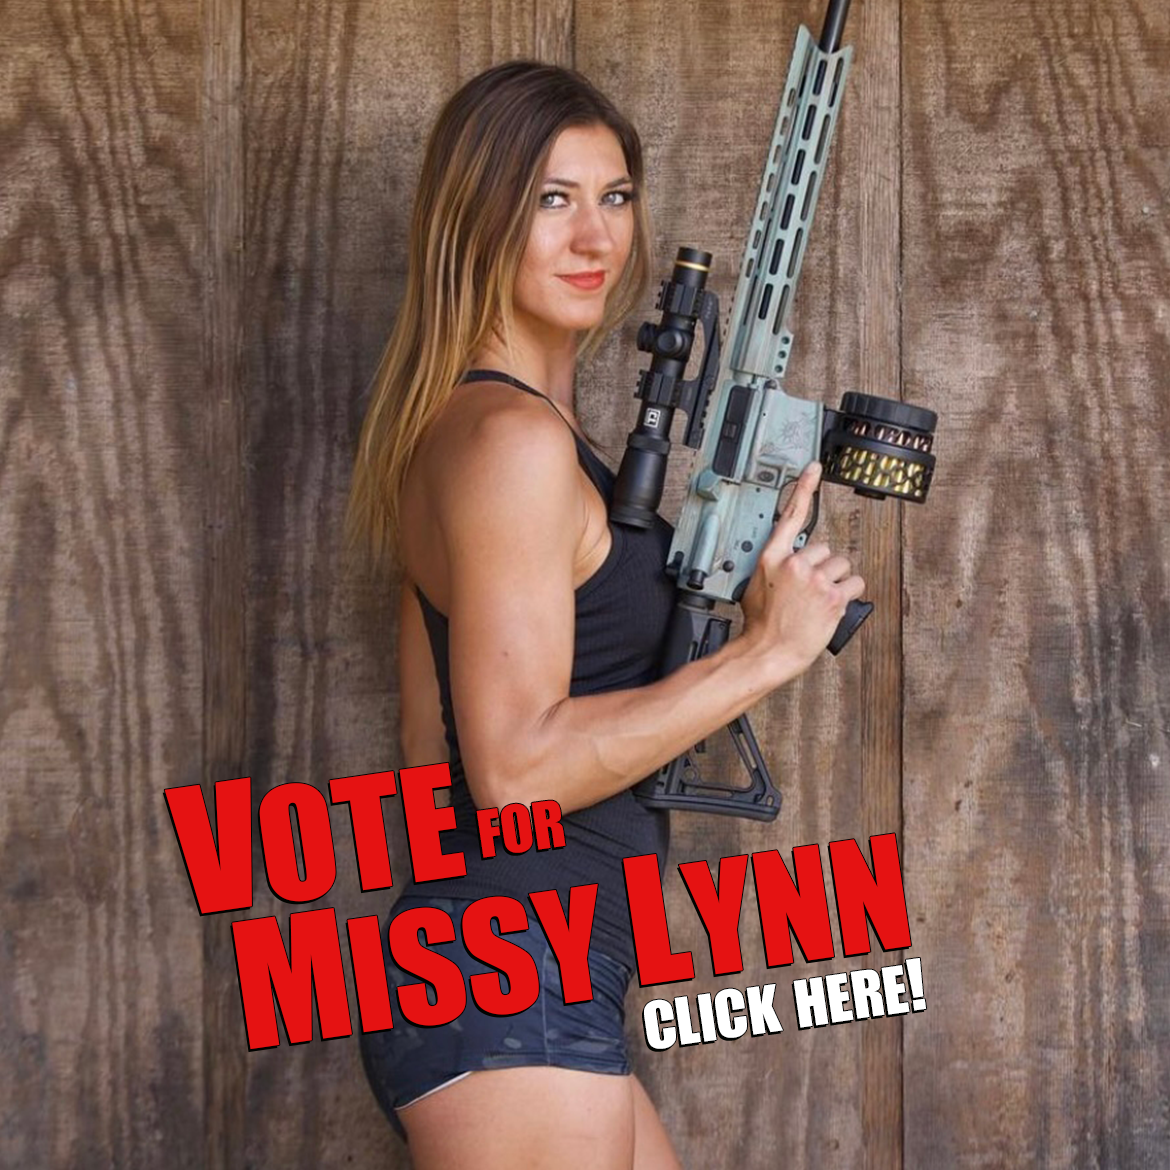 vote-for-missy-lynn.png